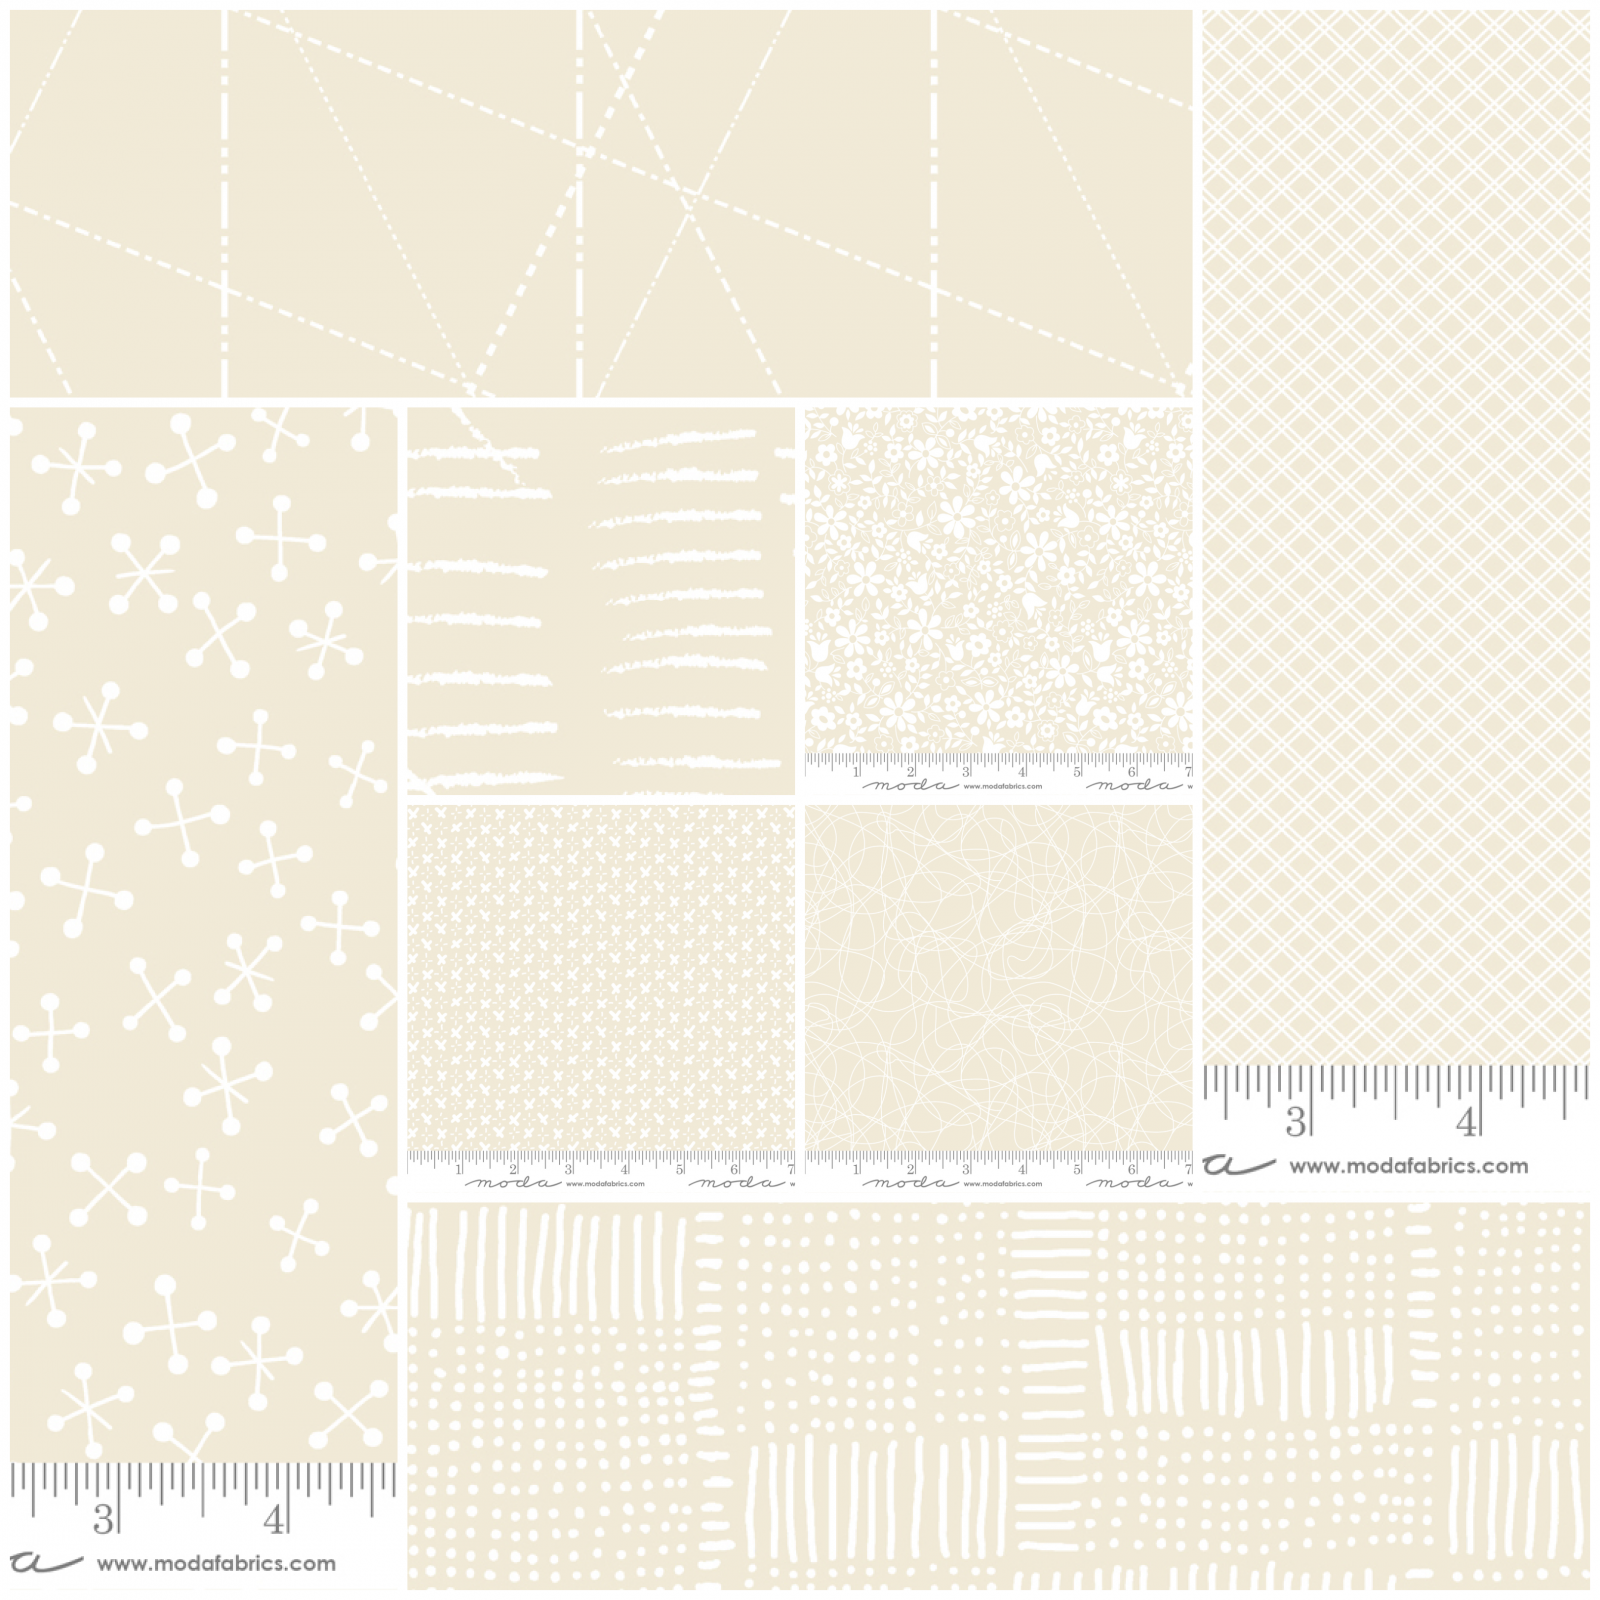 Whispers FQ Bundle of 8 - Muslin